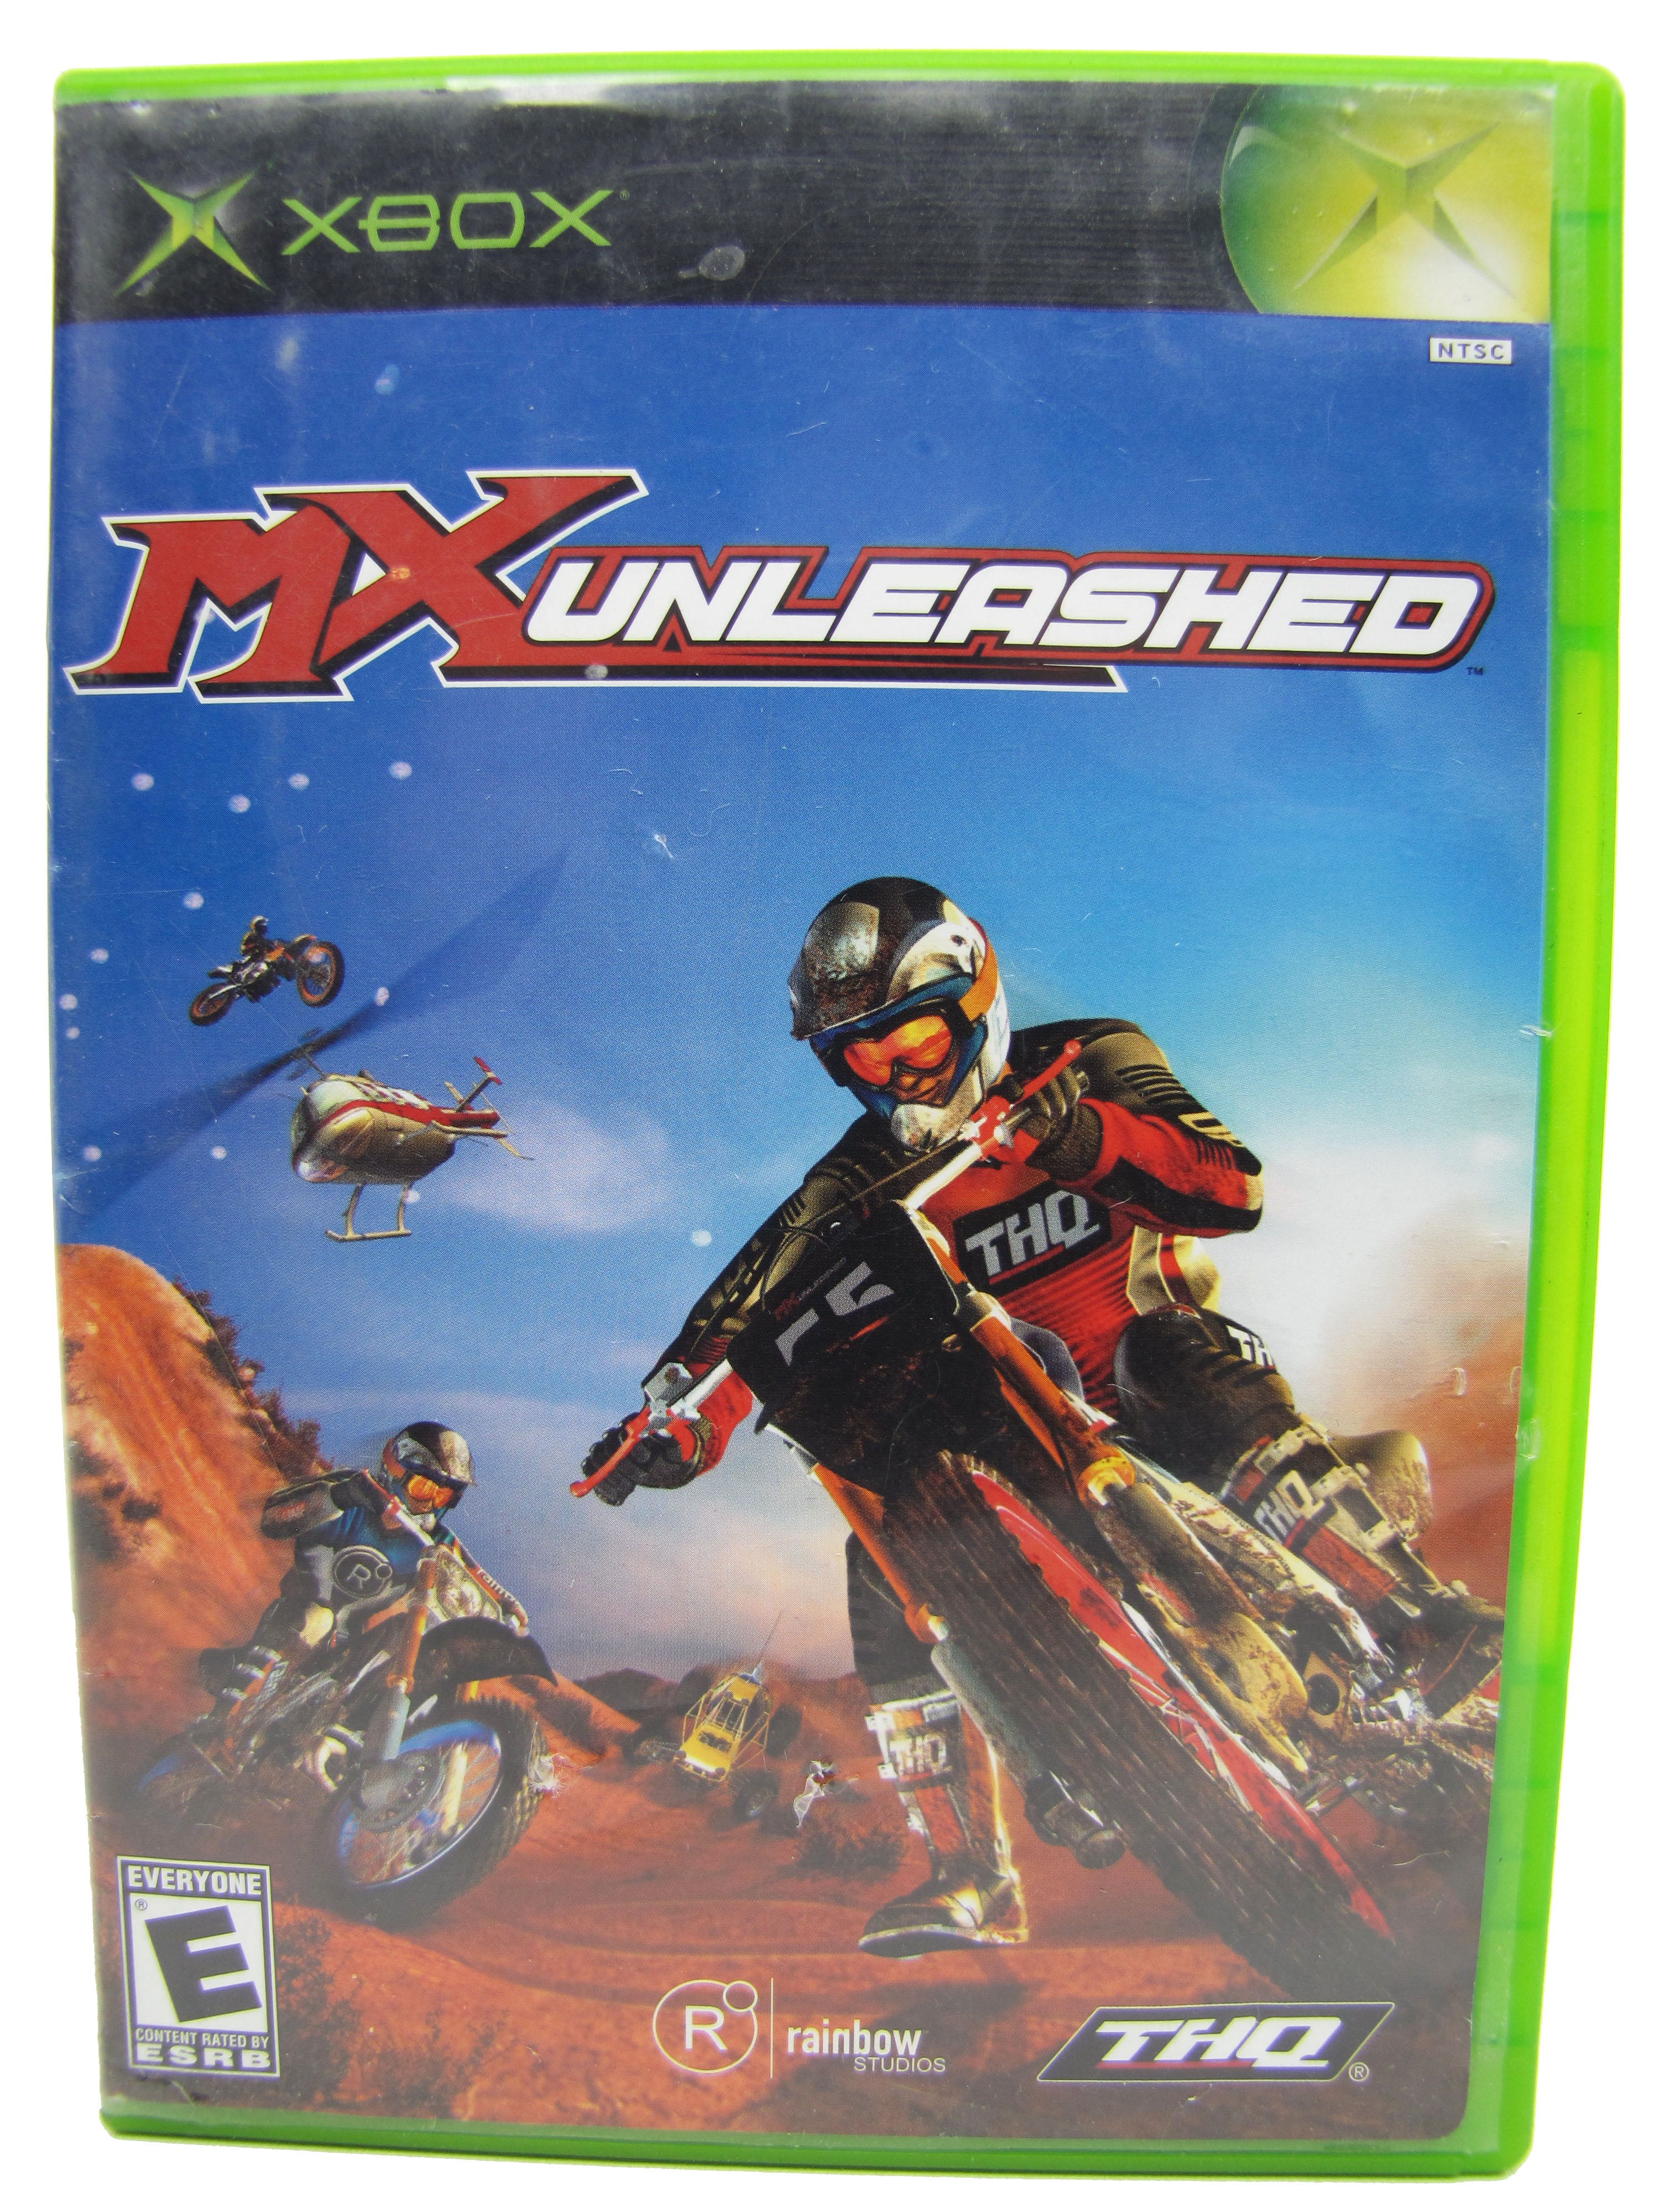 XBOX MX Unleashed Complete - 2004